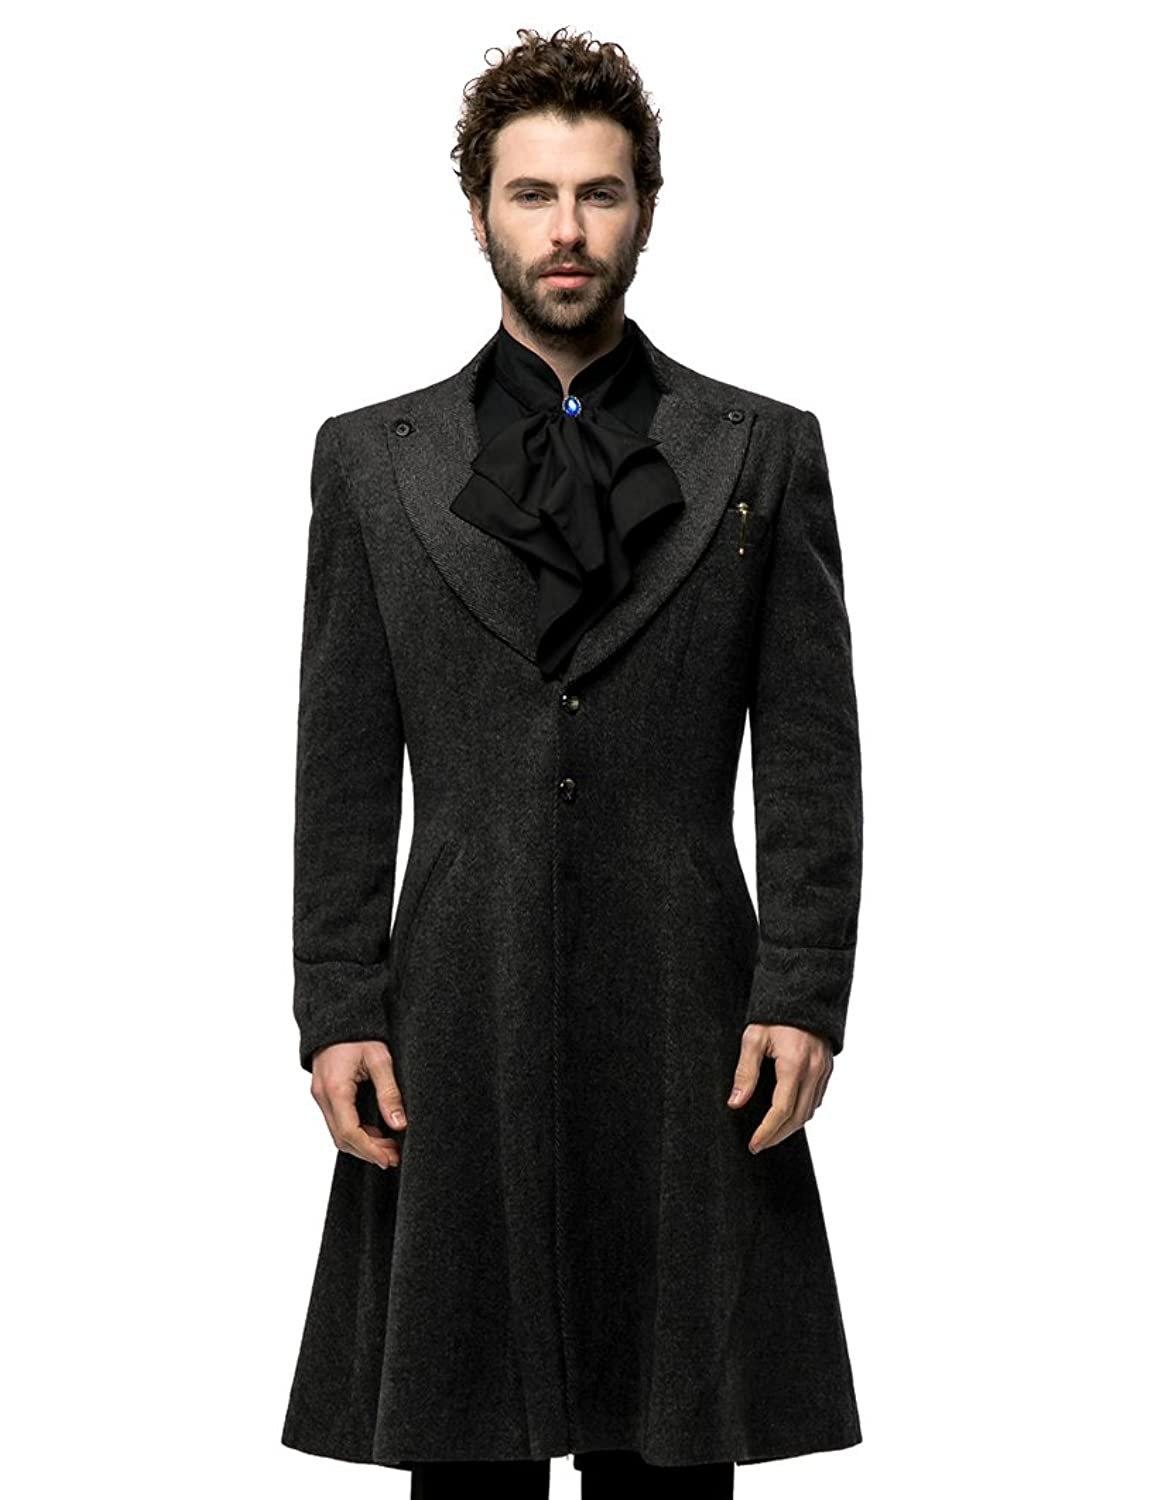 Victorian Men's Clothing Aristocrat Black&grey Wool Blend Long Coat for Man $195.00 AT vintagedancer.com